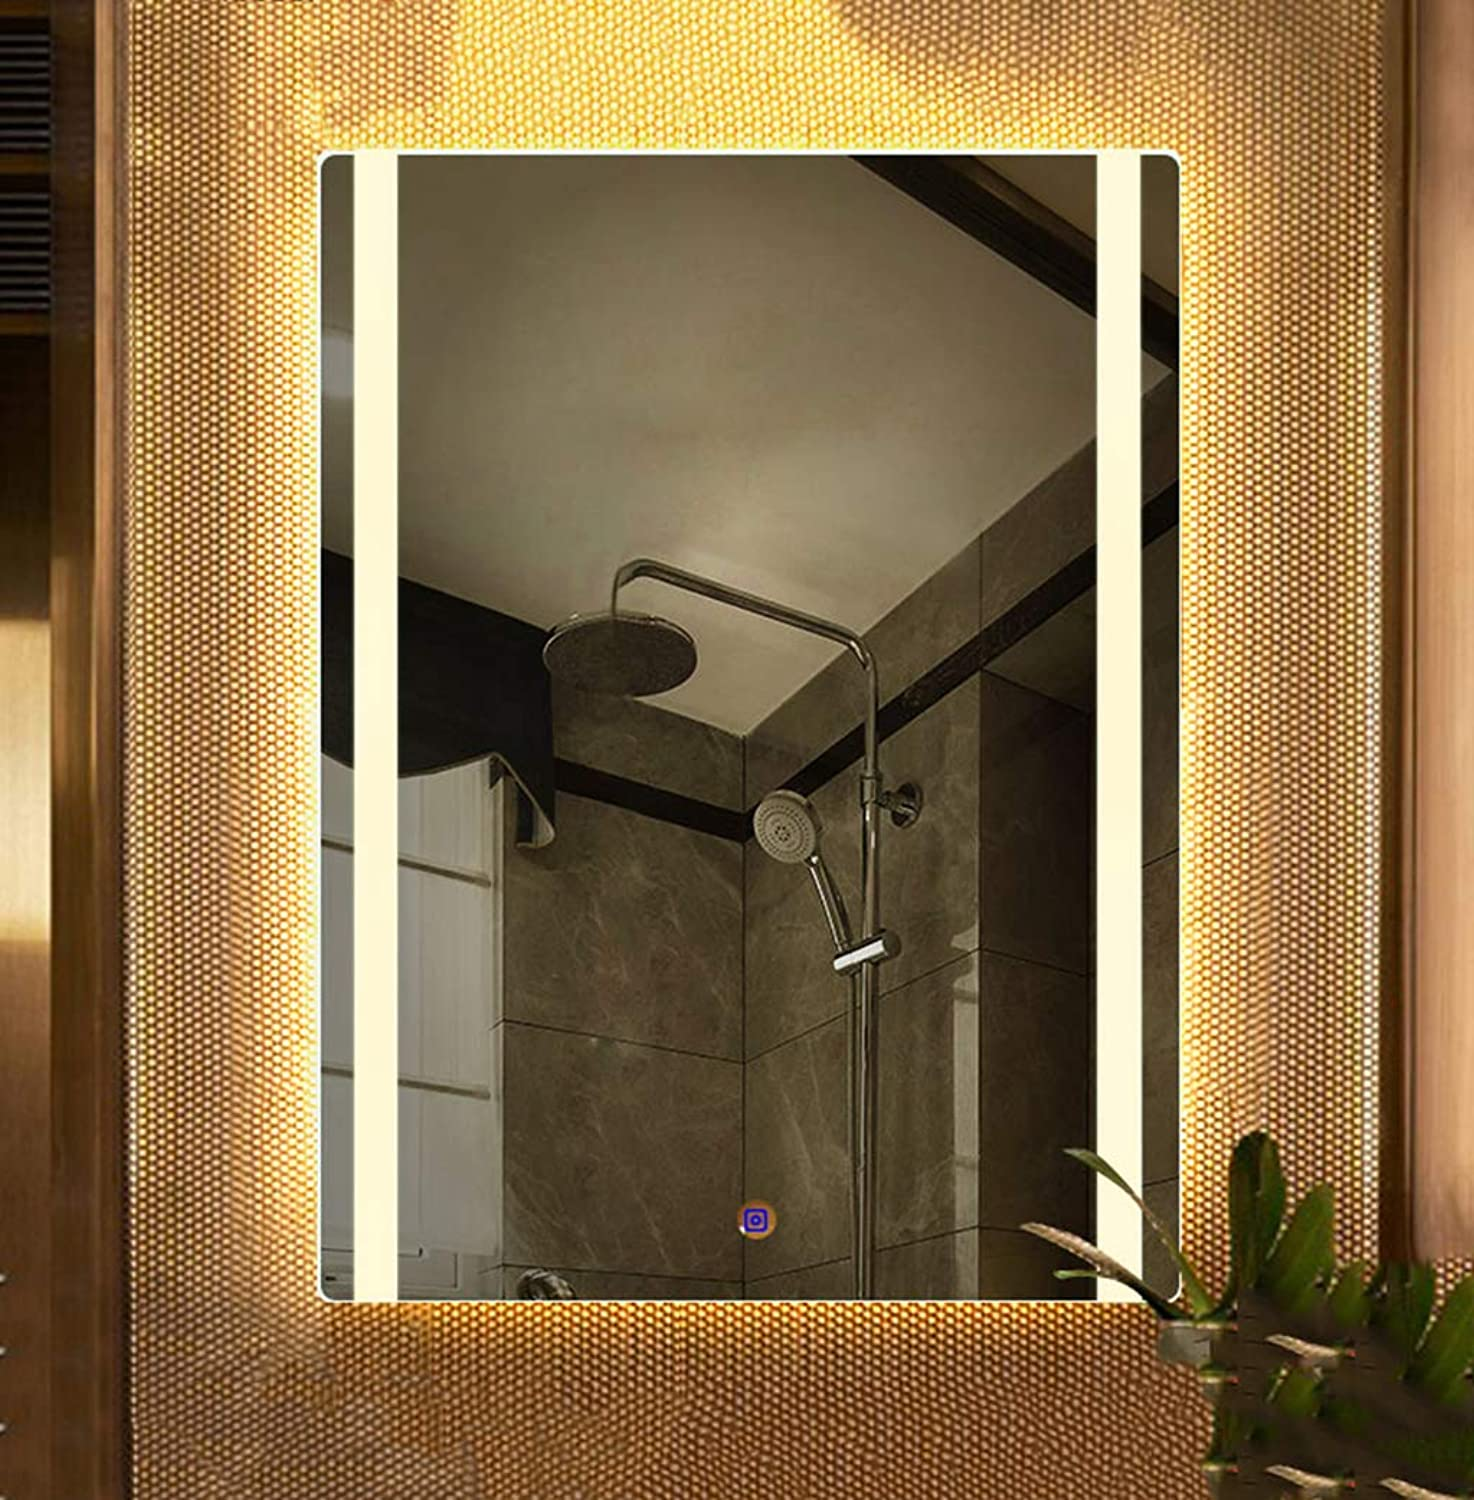 12V Adjustable LED Brightness Bathroom Light Mirror, Wall-Mounted Square Frameless bathroom mirror